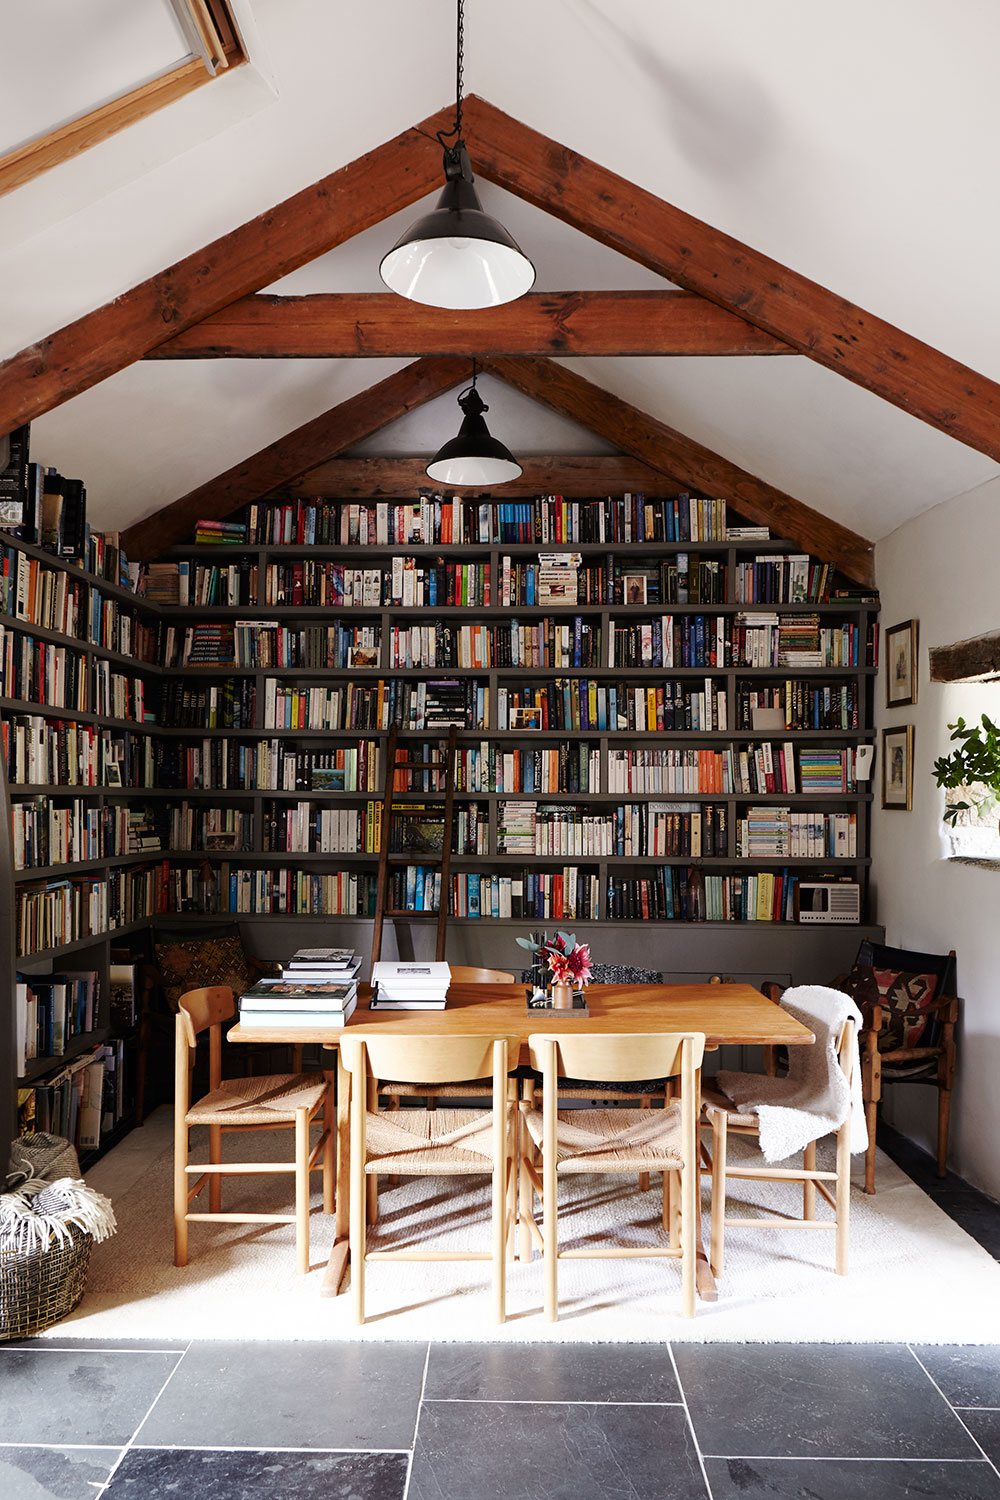 Cornish_barn_library.jpg